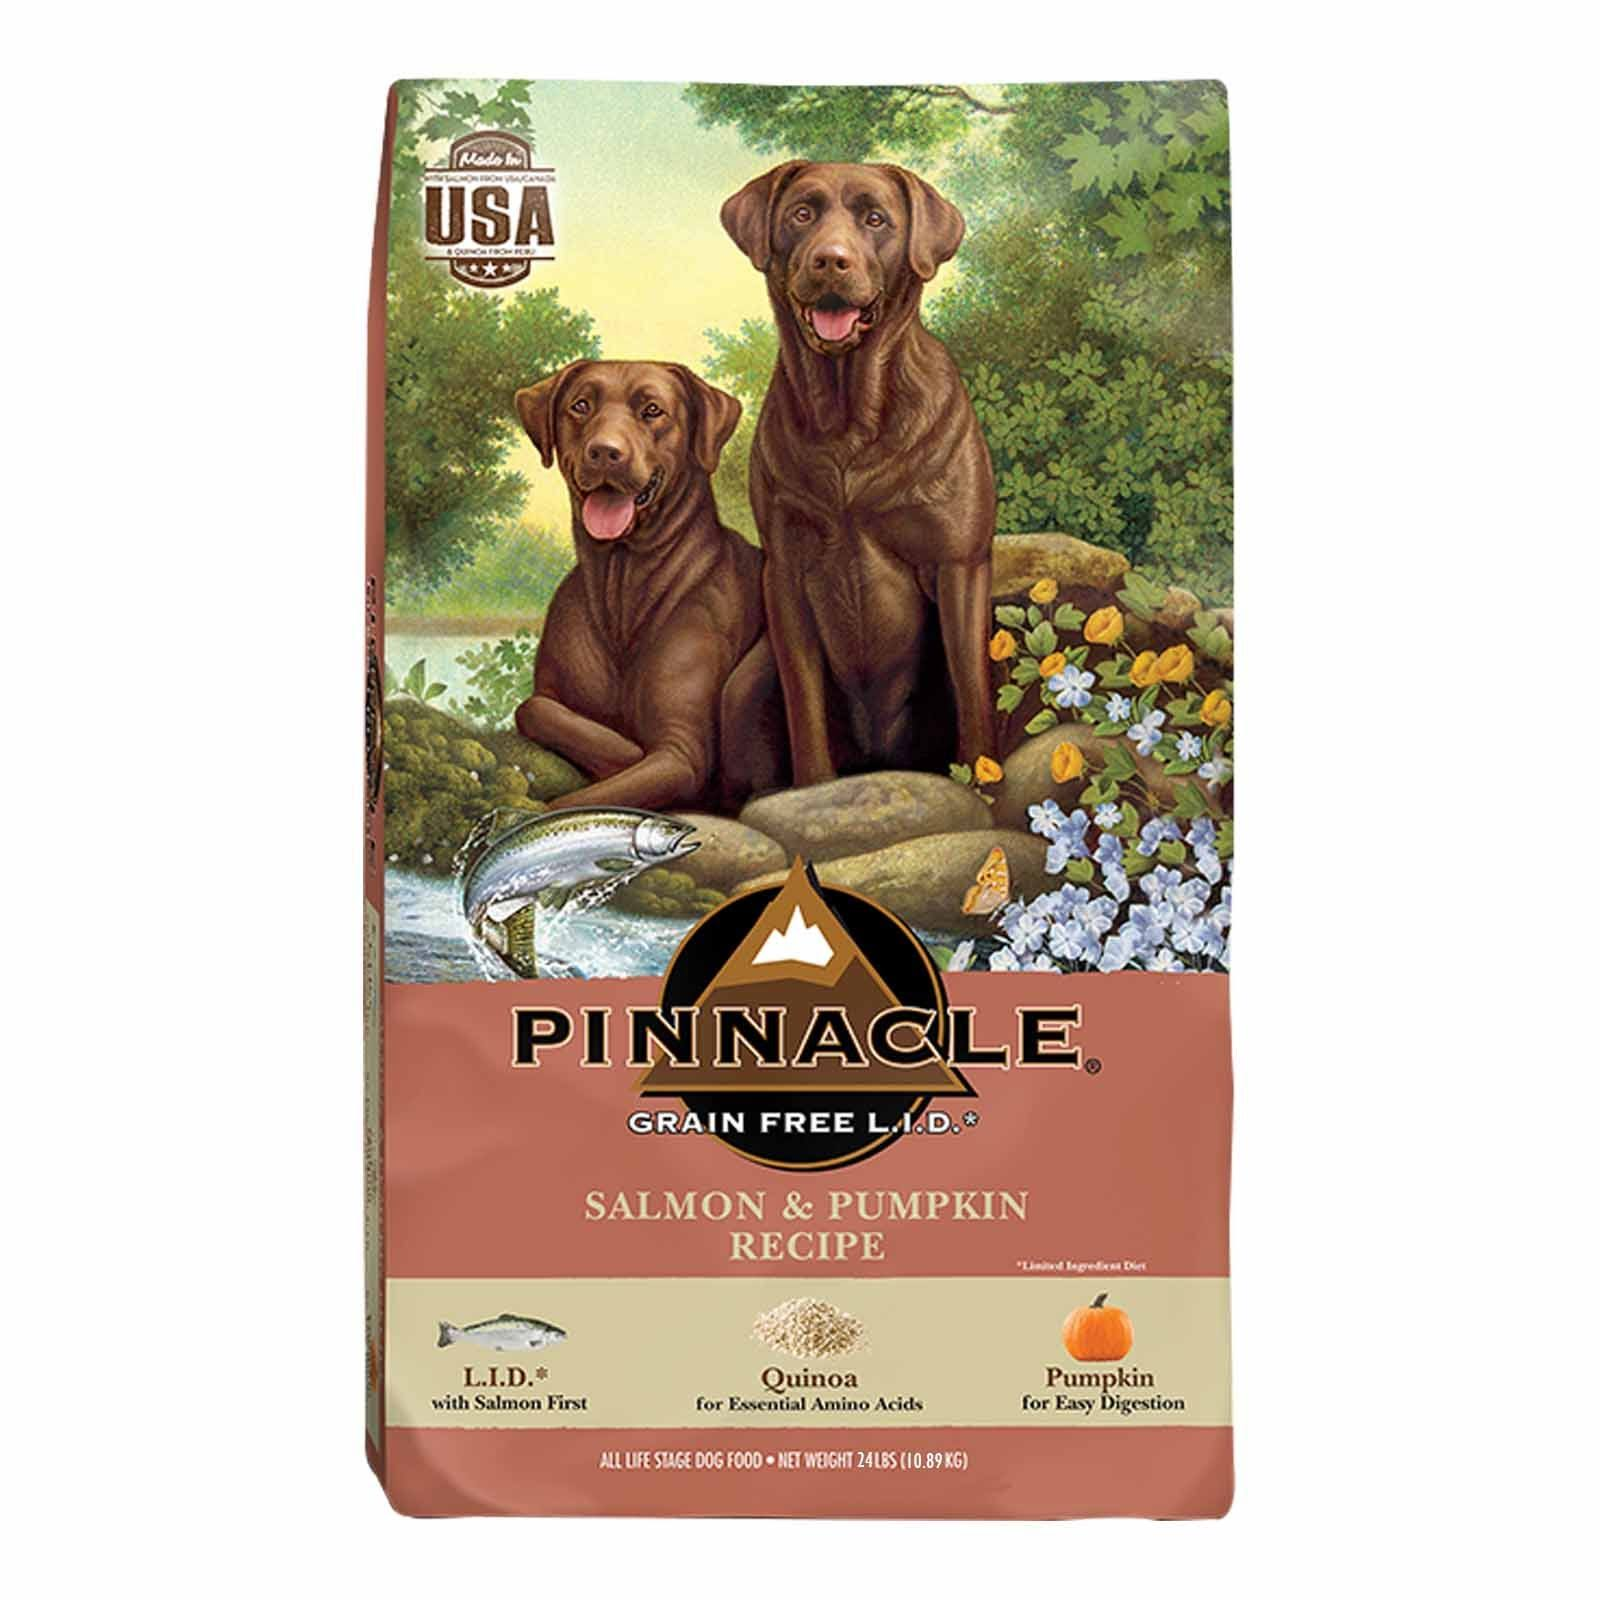 Pinnacle Salmon & Pumpkin Recipe Grain Free Dog Food 24 lbs